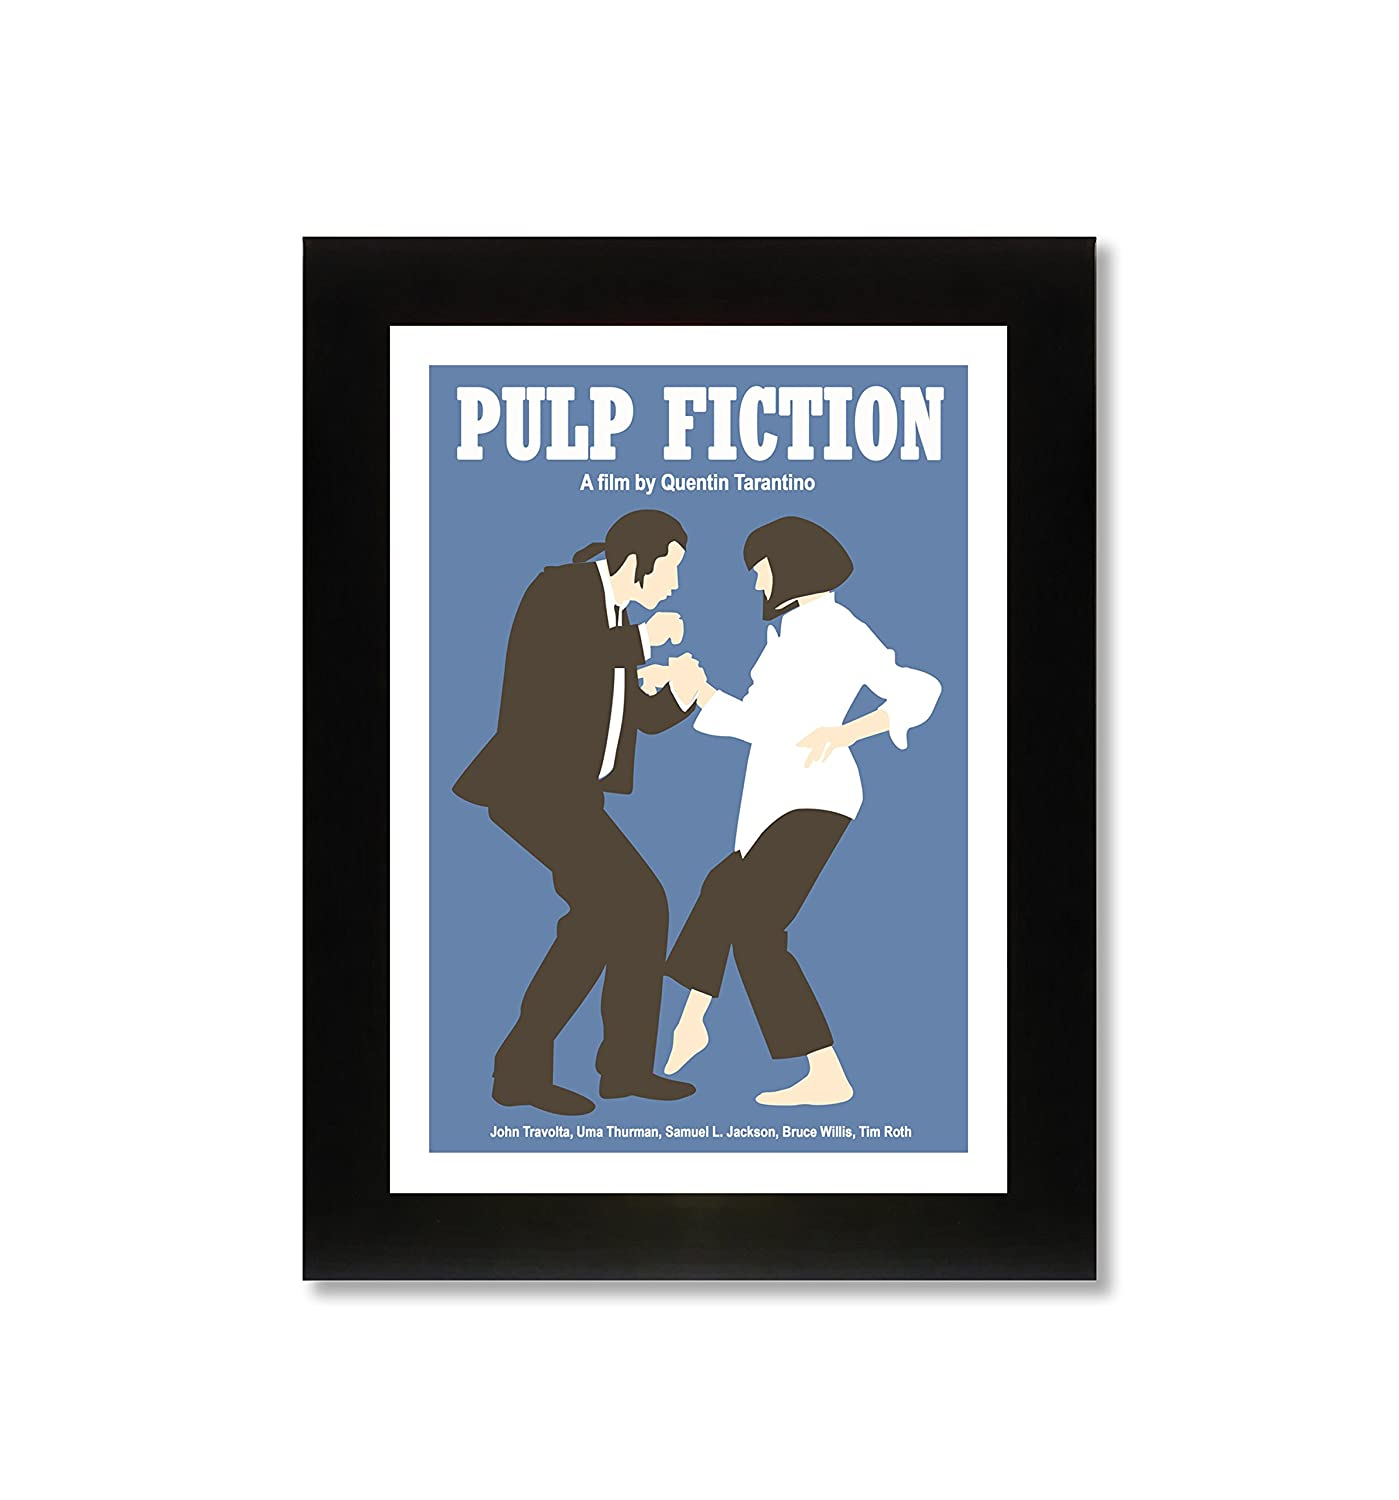 Stampa di Pulp Fiction in A4, incorniciata, edizione limitata richard thomas ltd